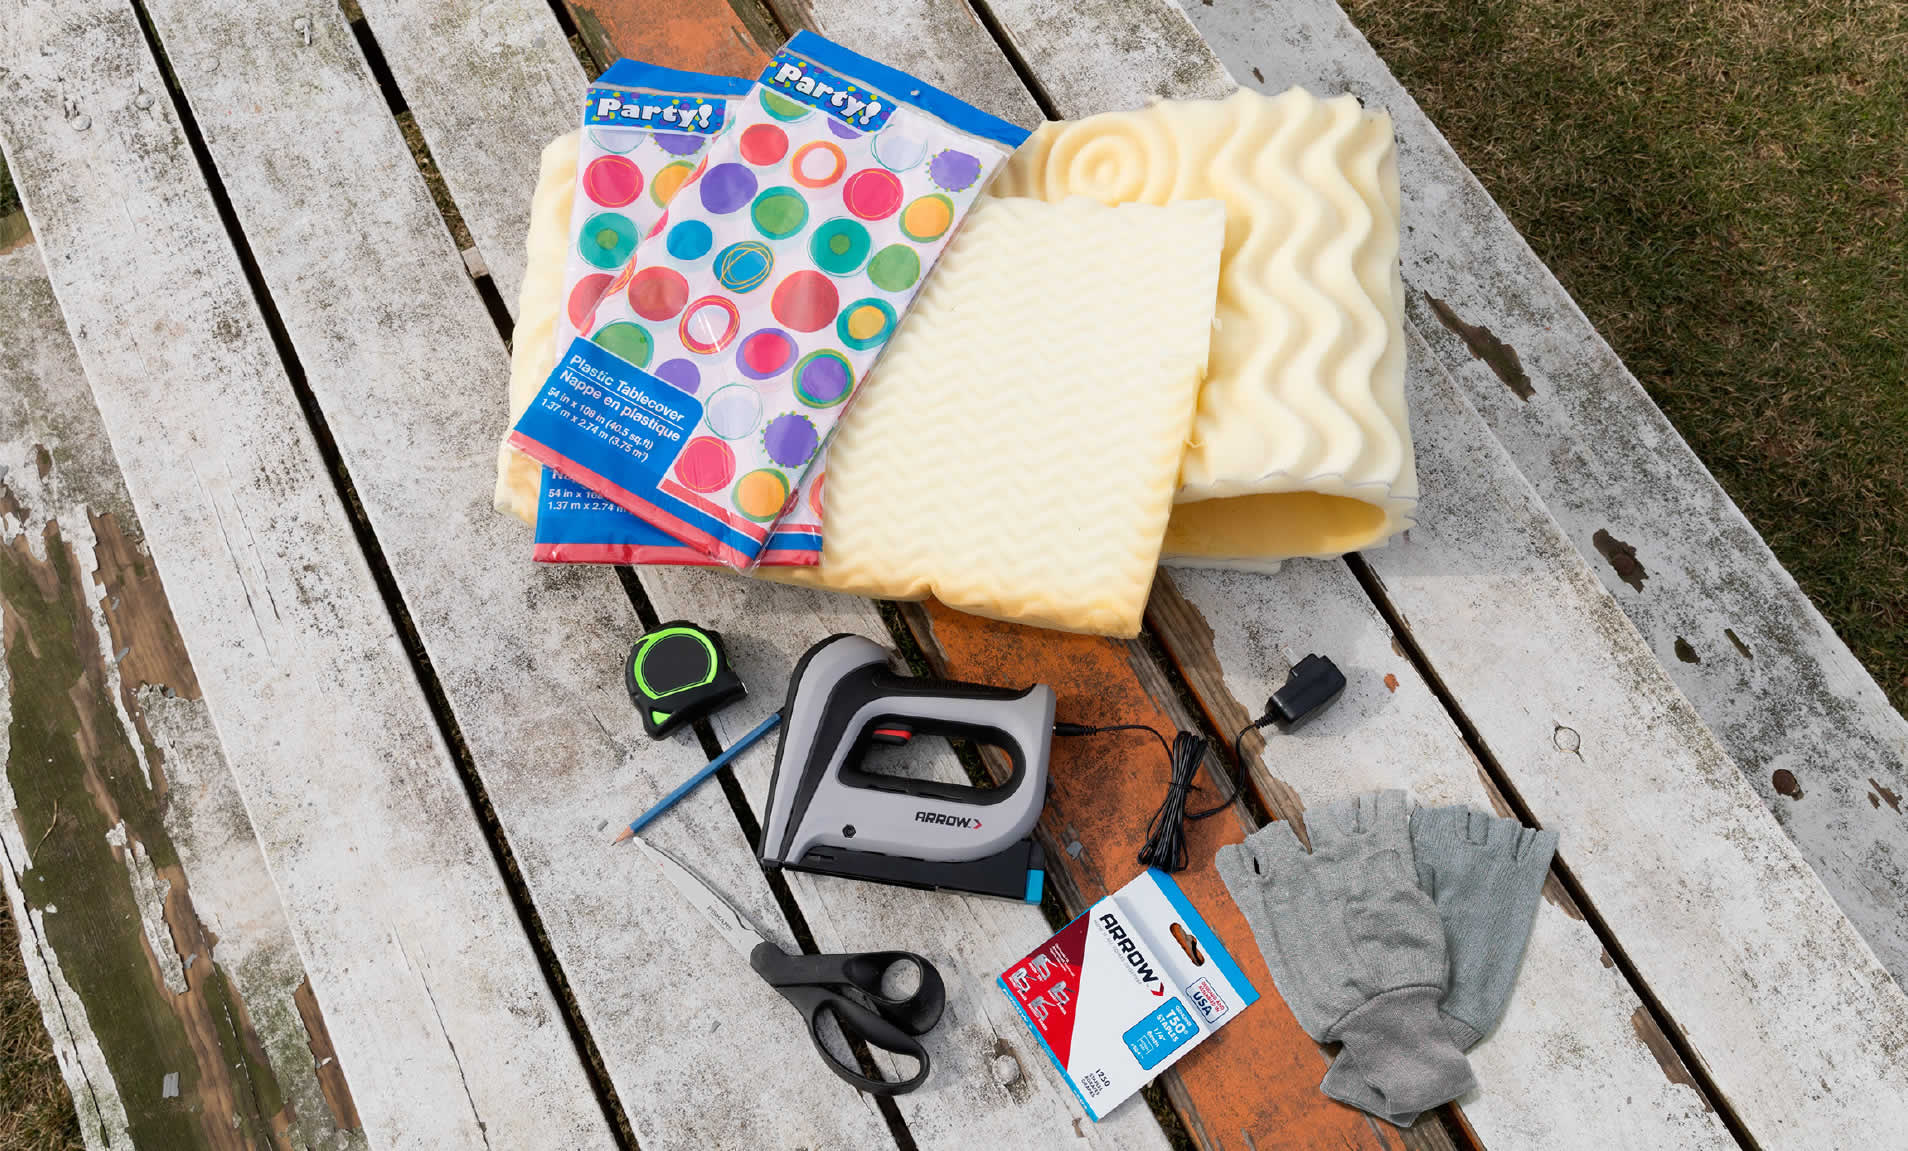 picnic-table-cushion-arrow-project-tools-supplies